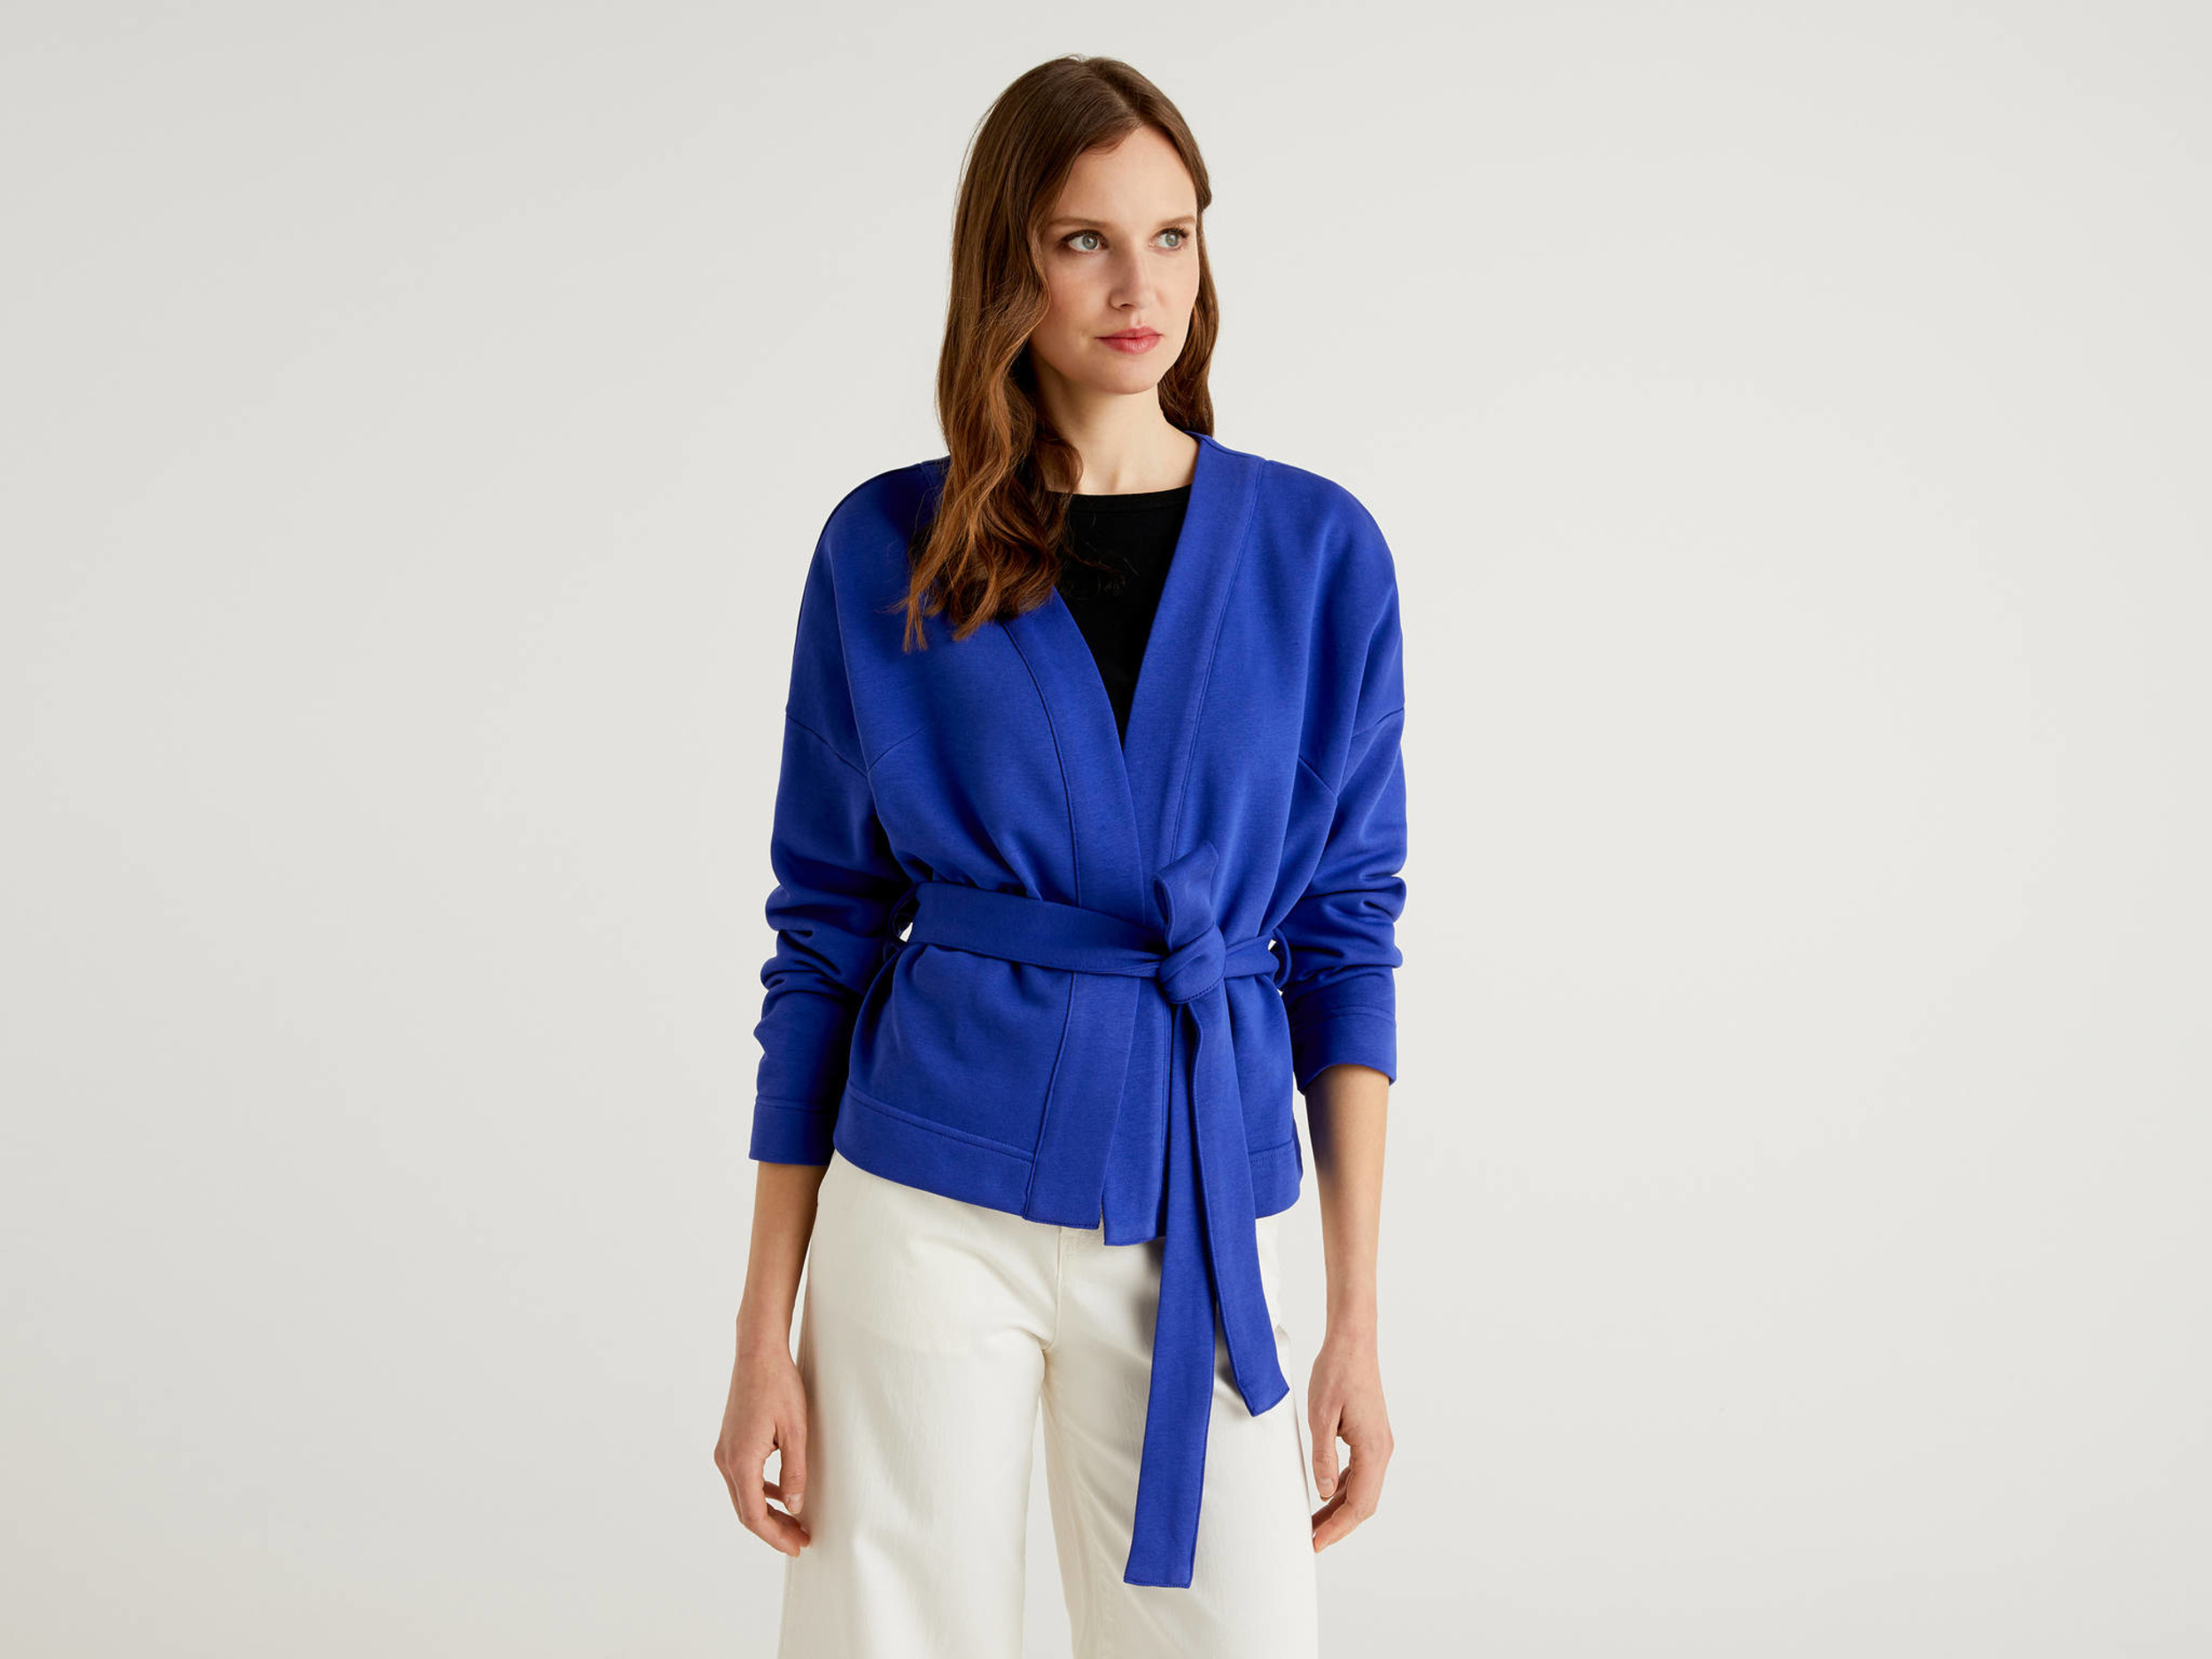 Benetton, Cardigan In Felpa Stile Kimono, taglia S, Blu, Donna - United Colors of Benetton - Modalova